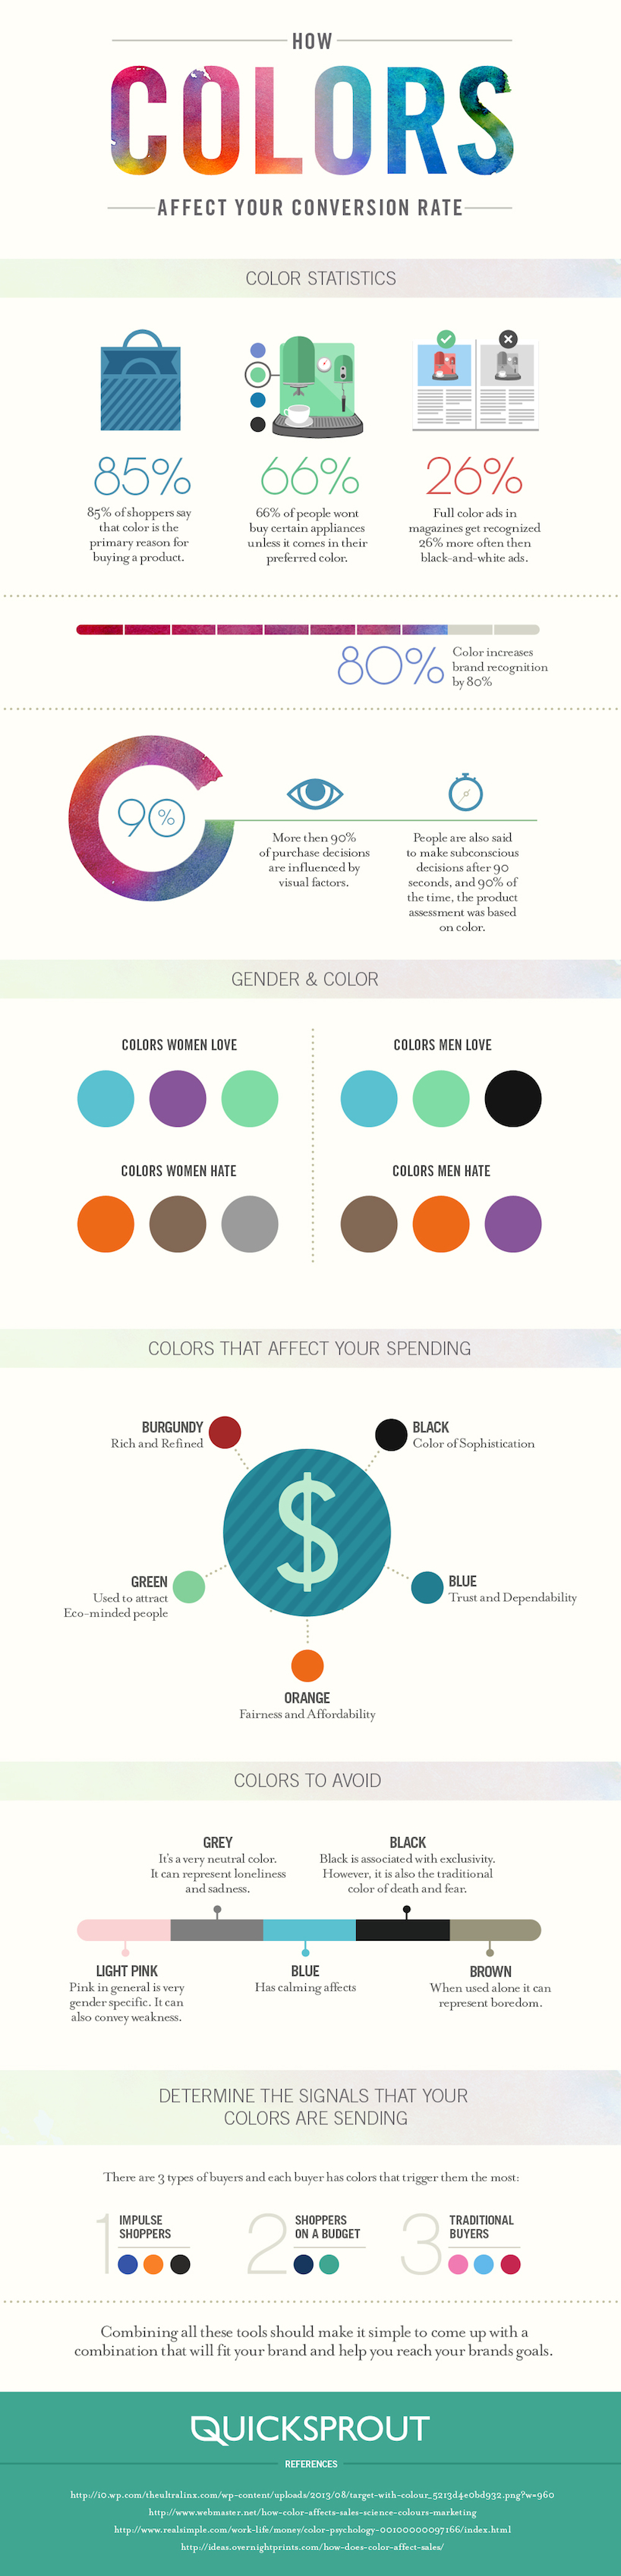 How Colors Affect Conversion Rate